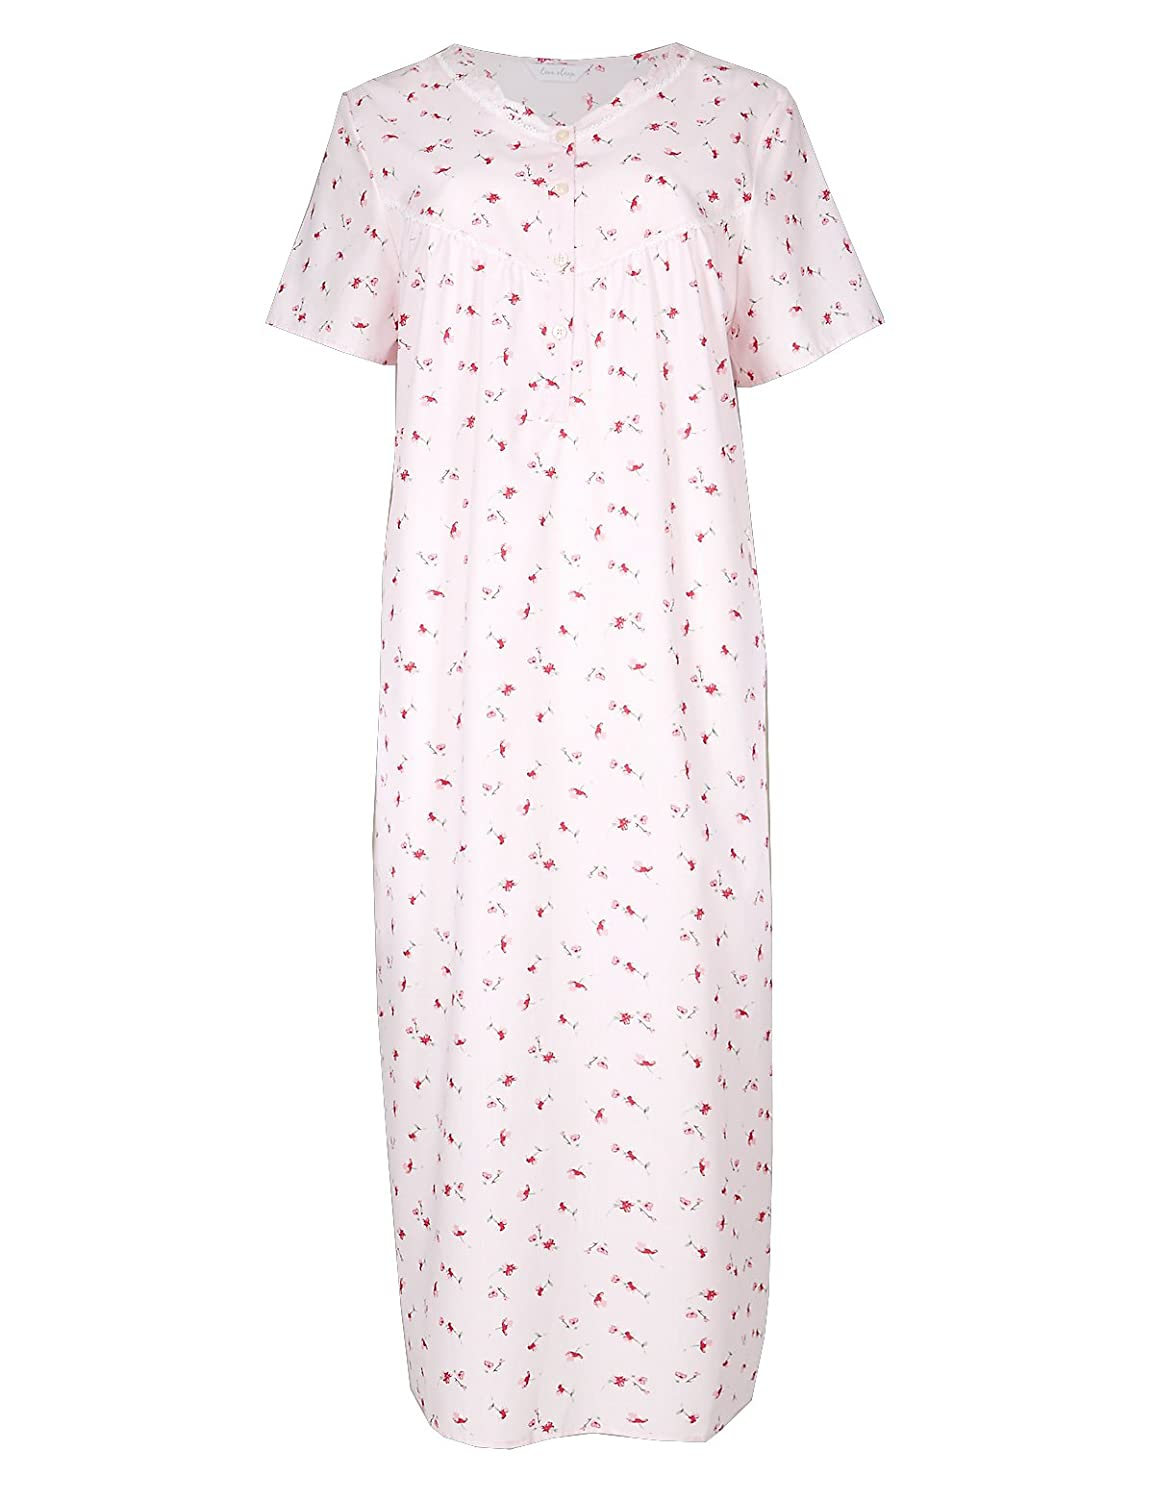 Marks /& Spencer nightdress brand new with tags size 8